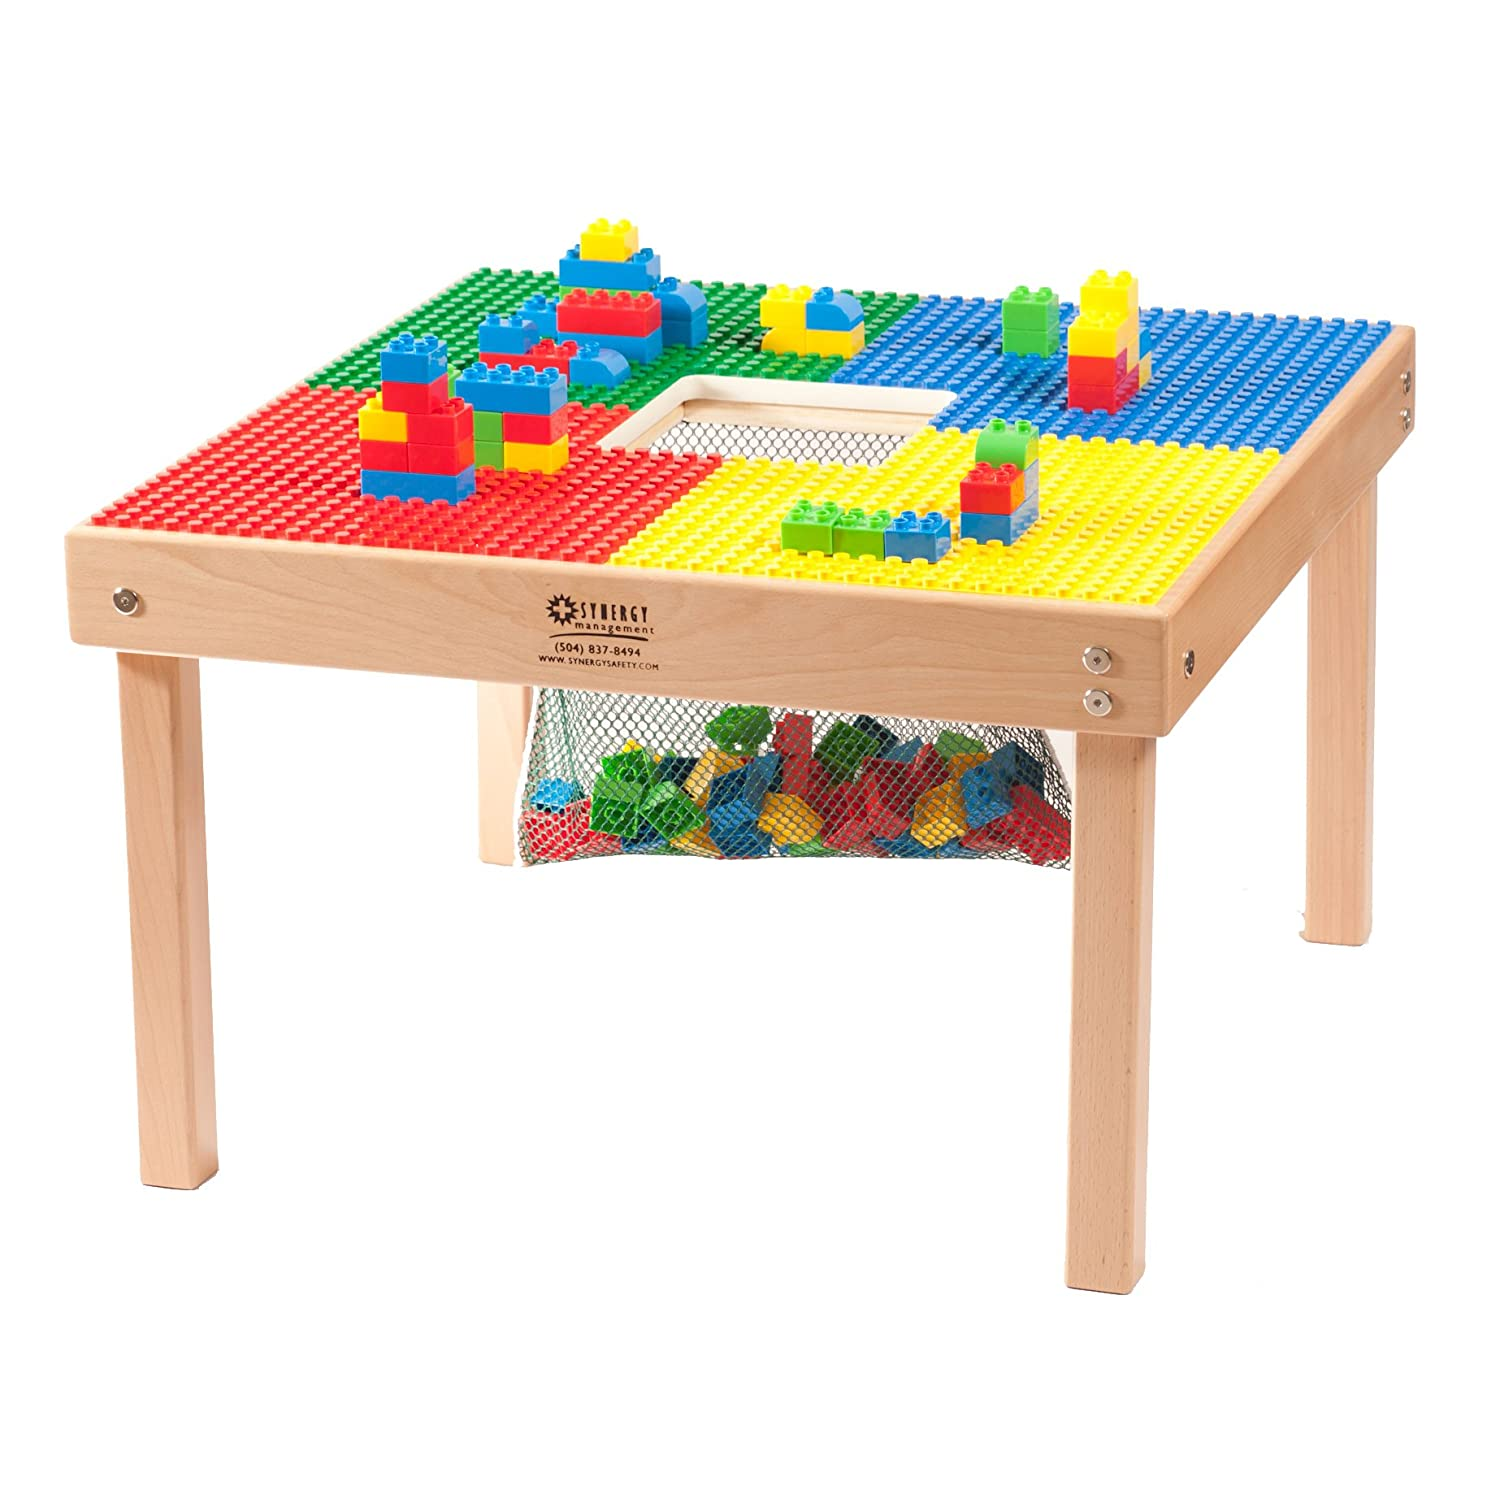 LEGO DUPLO COMPATIBLE PREMIUM QUALITY MAPLE WOOD TABLE 27